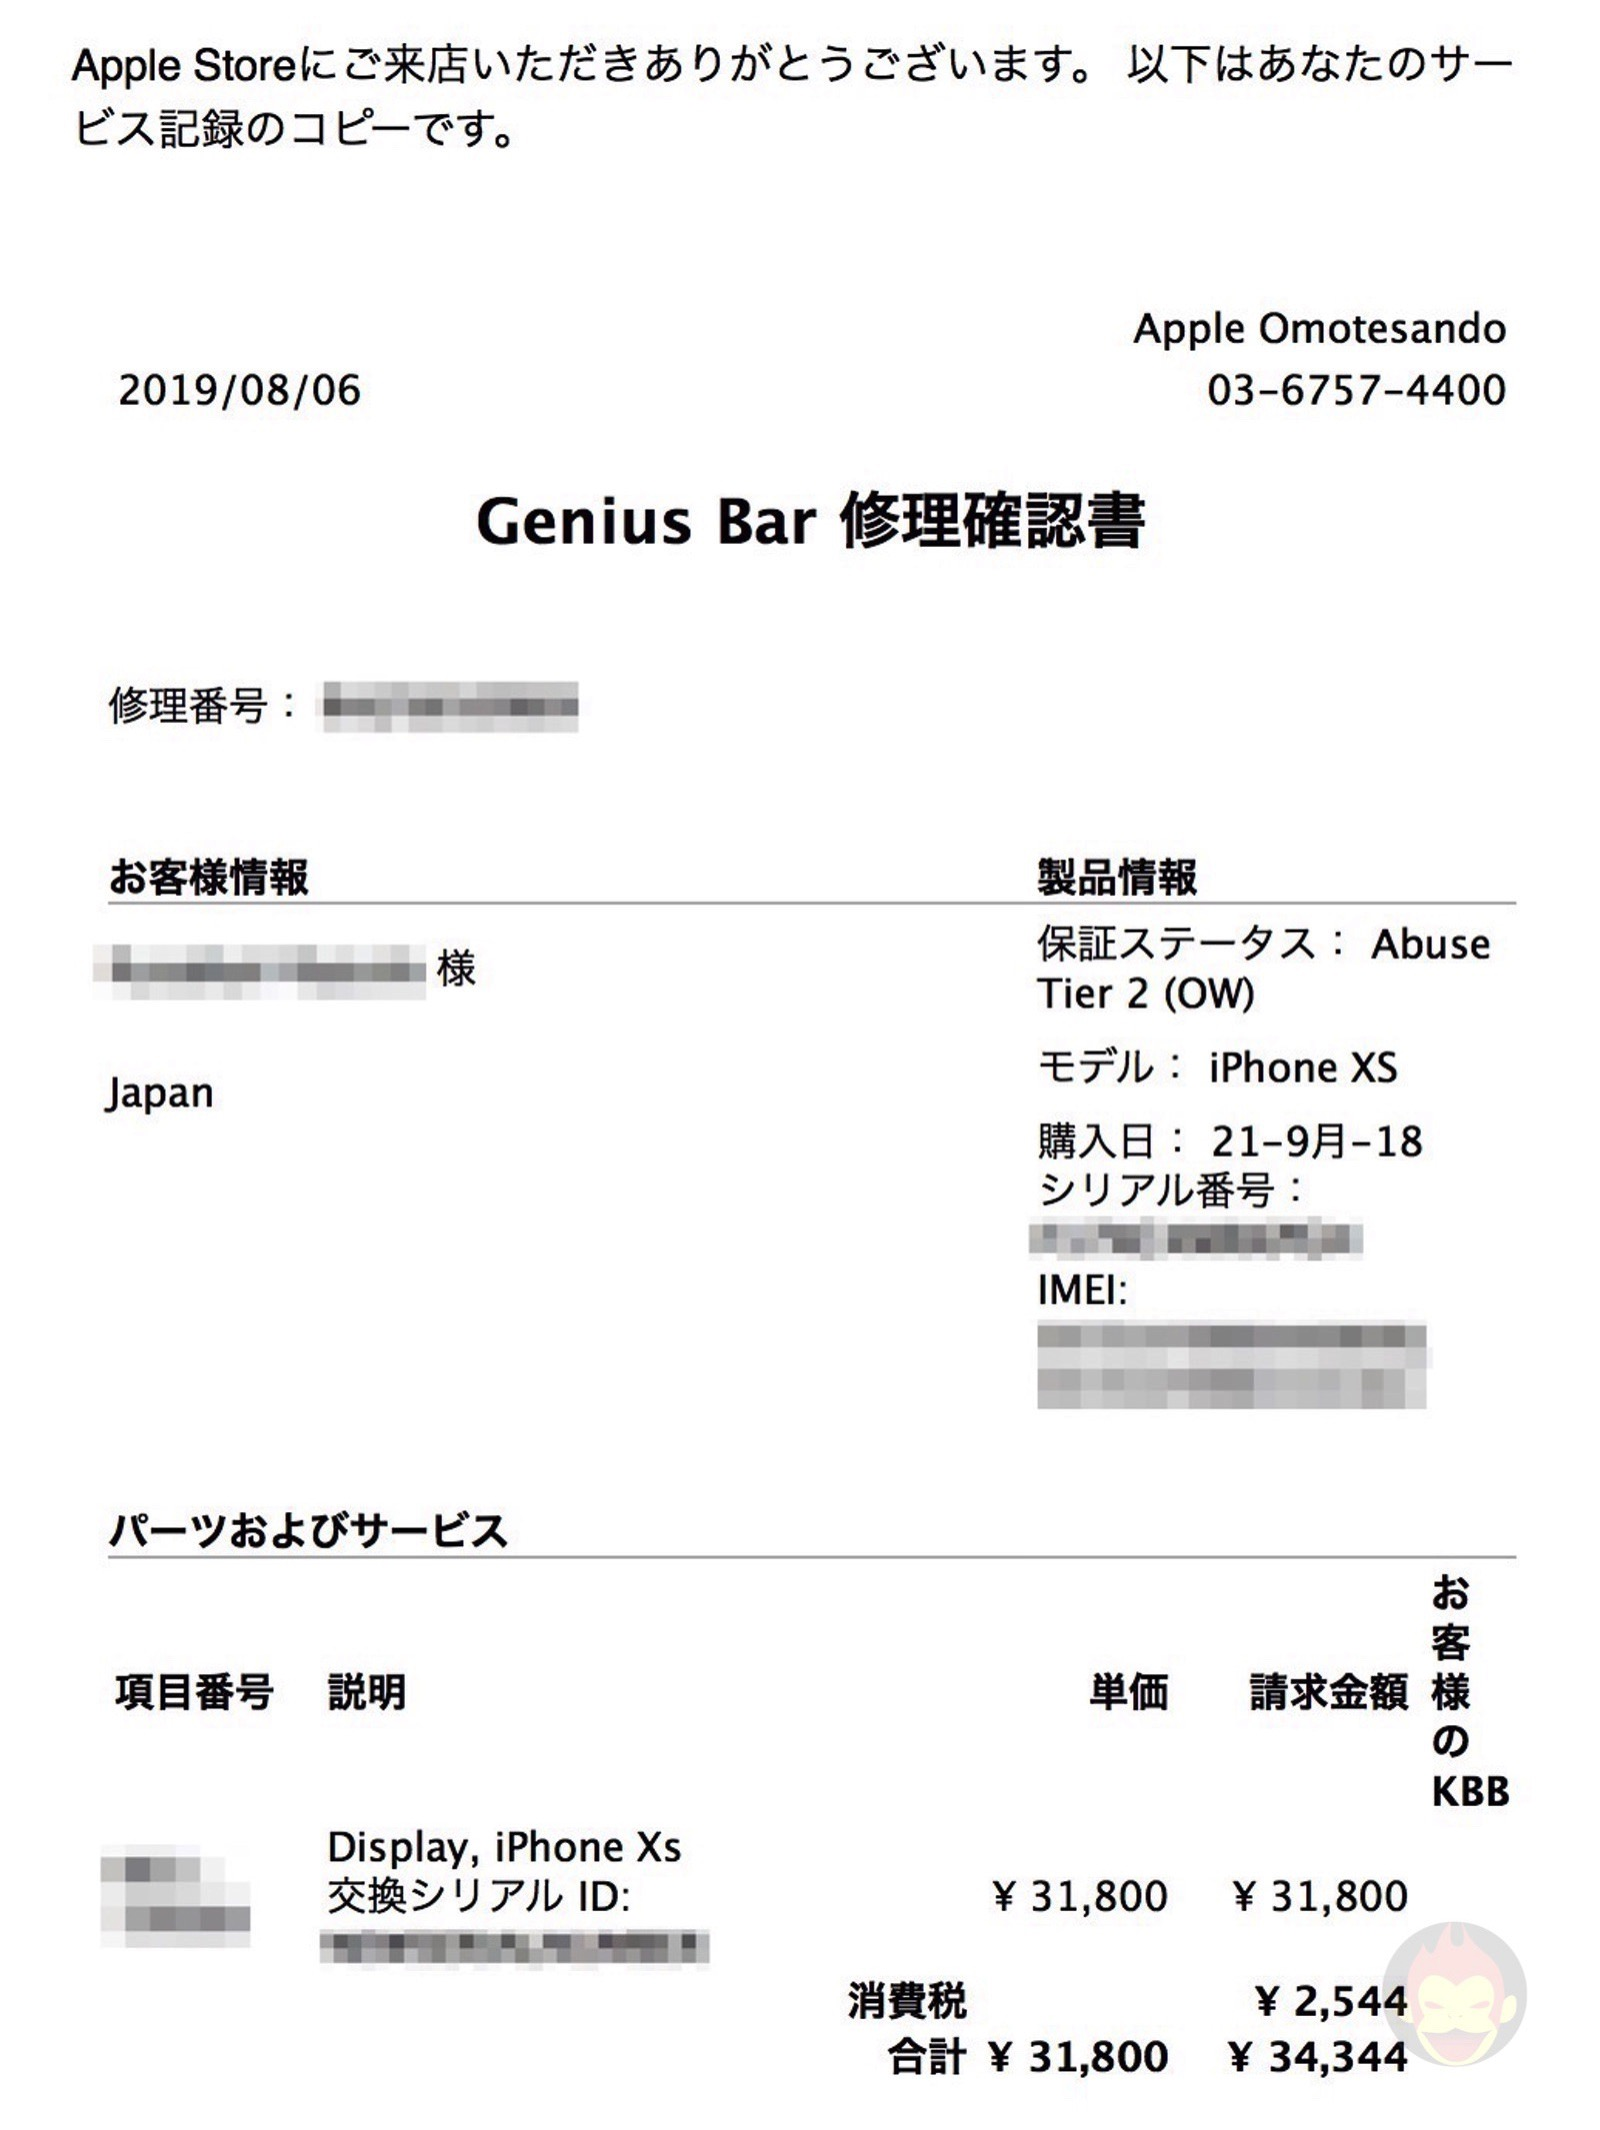 Genius Bar Recipt 01